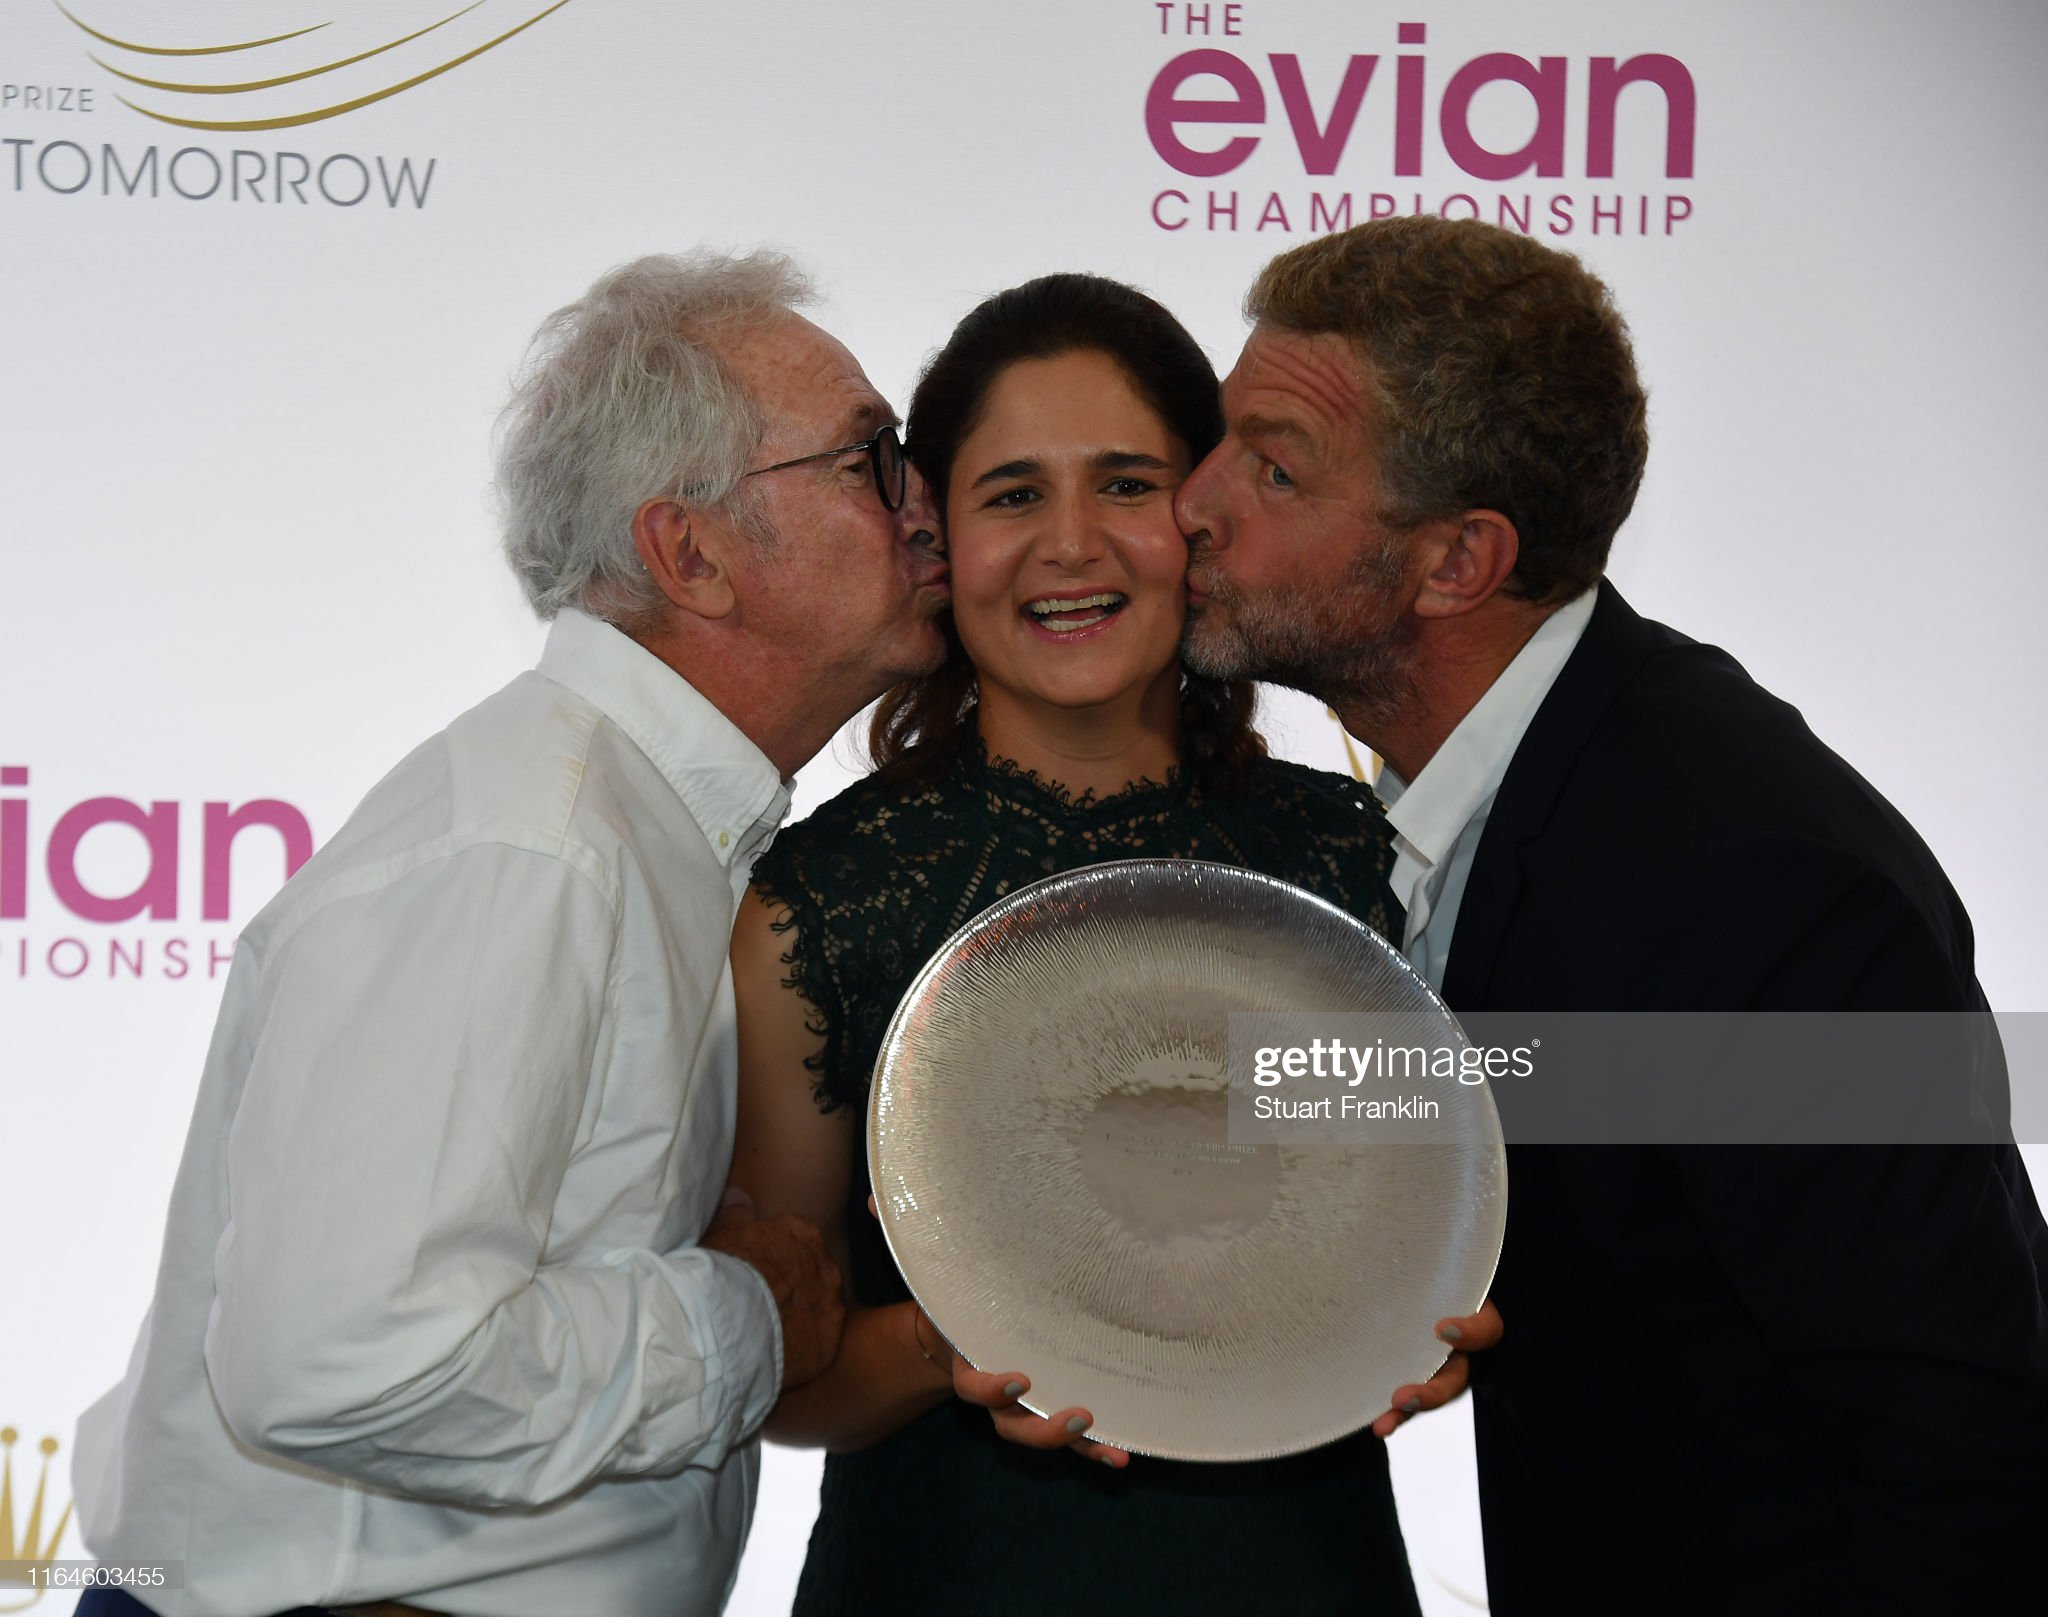 https://media.gettyimages.com/photos/frank-riboud-president-of-the-evian-championship-lorena-ochoa-of-and-picture-id1164603455?s=2048x2048